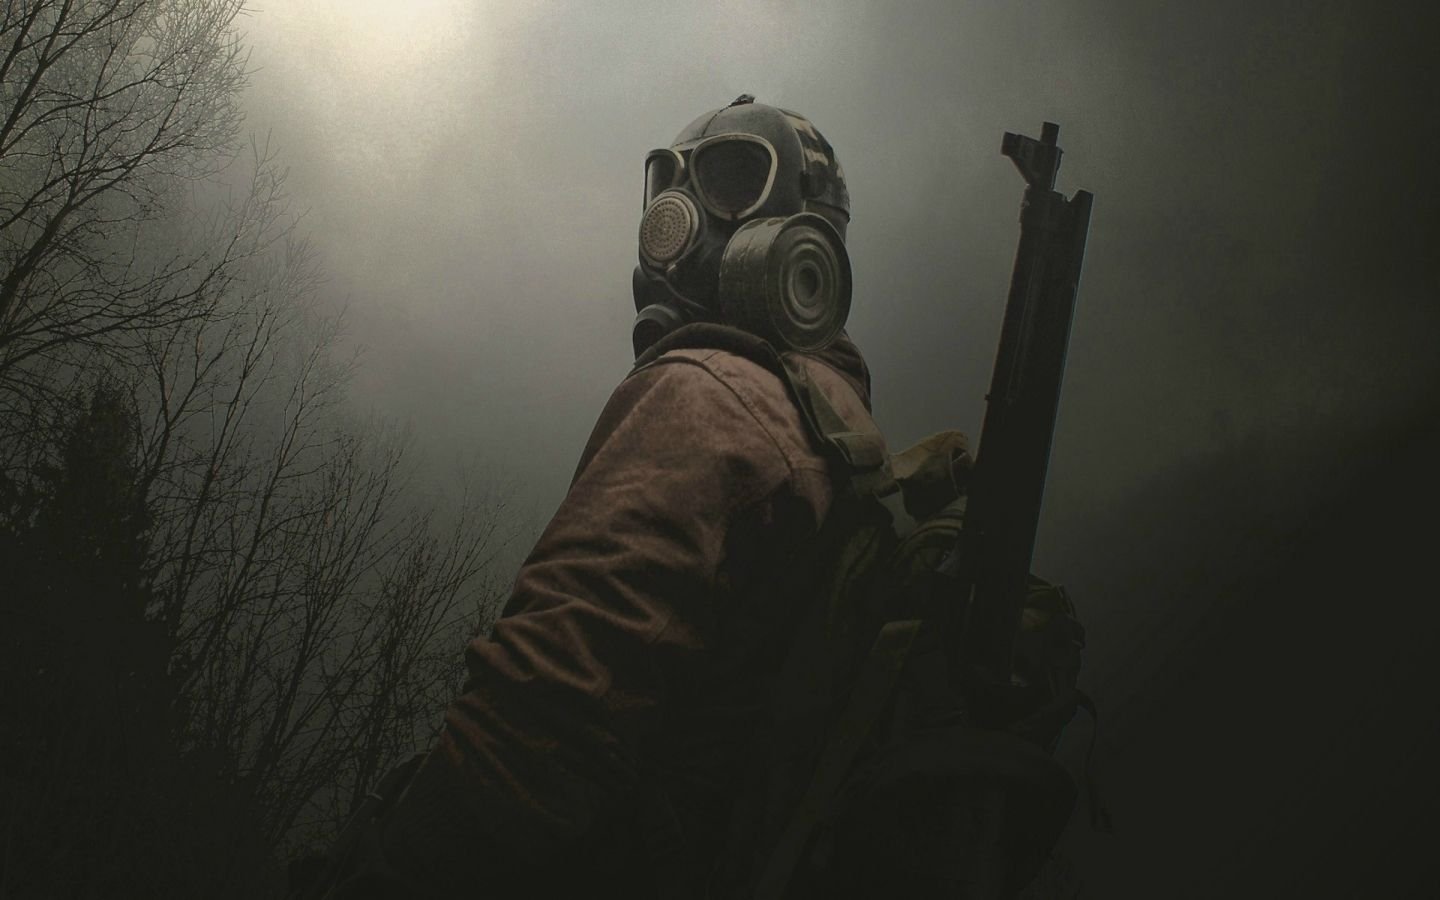 1440x900 High Res Wallpaper: Download 1440x900 Dark Gas Mask Wallpaper/Background ID